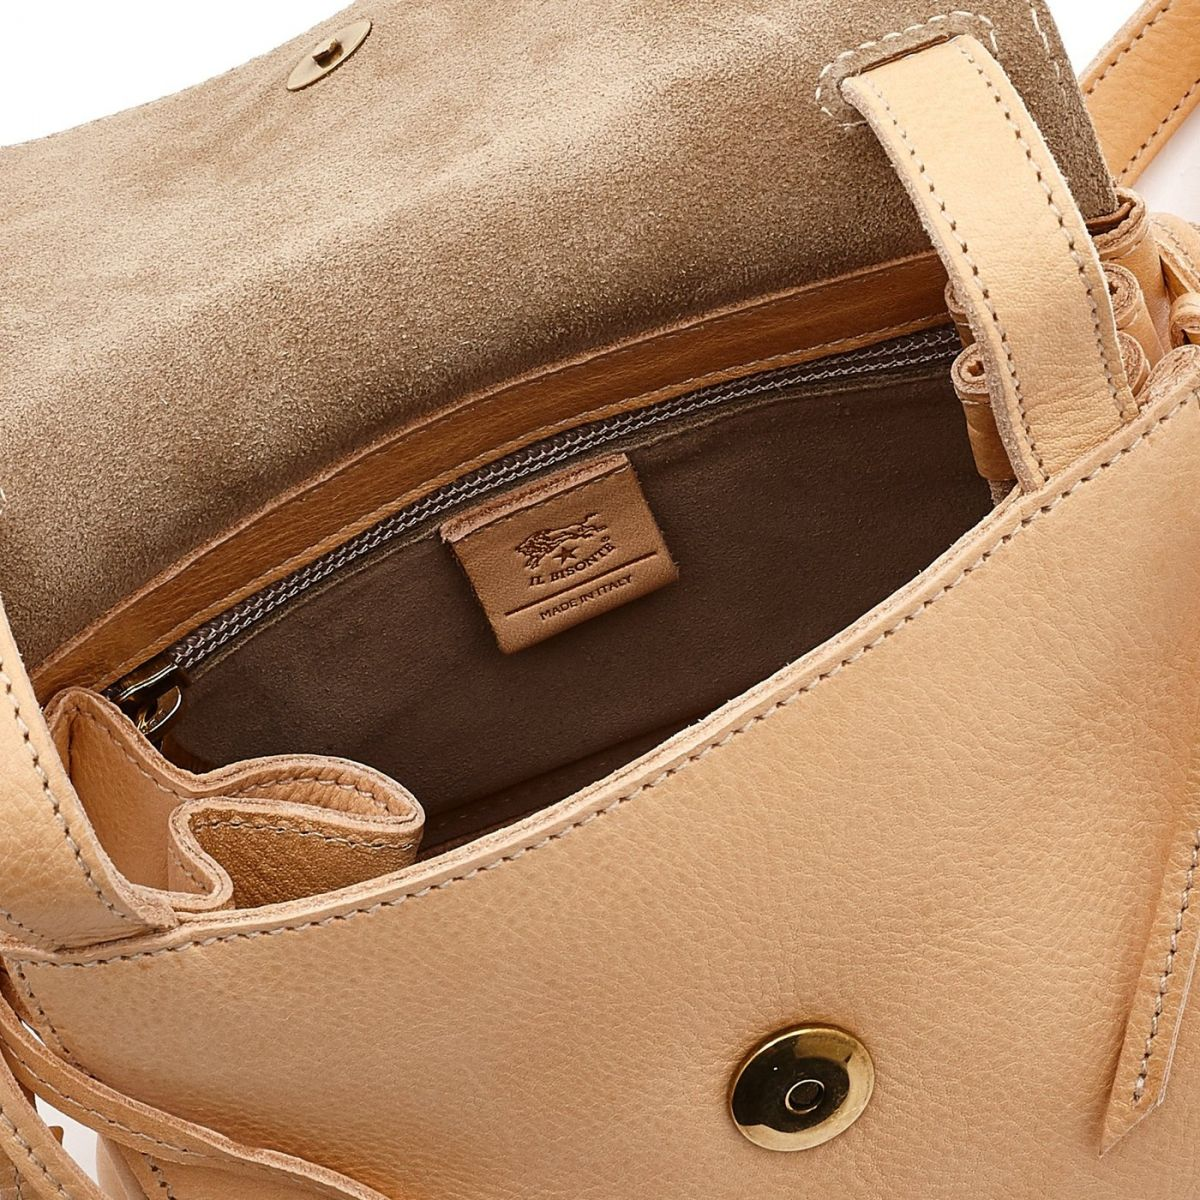 Women's Crossbody Bag Soffietto in Cowhide Leather BCR126 color Natural | Details